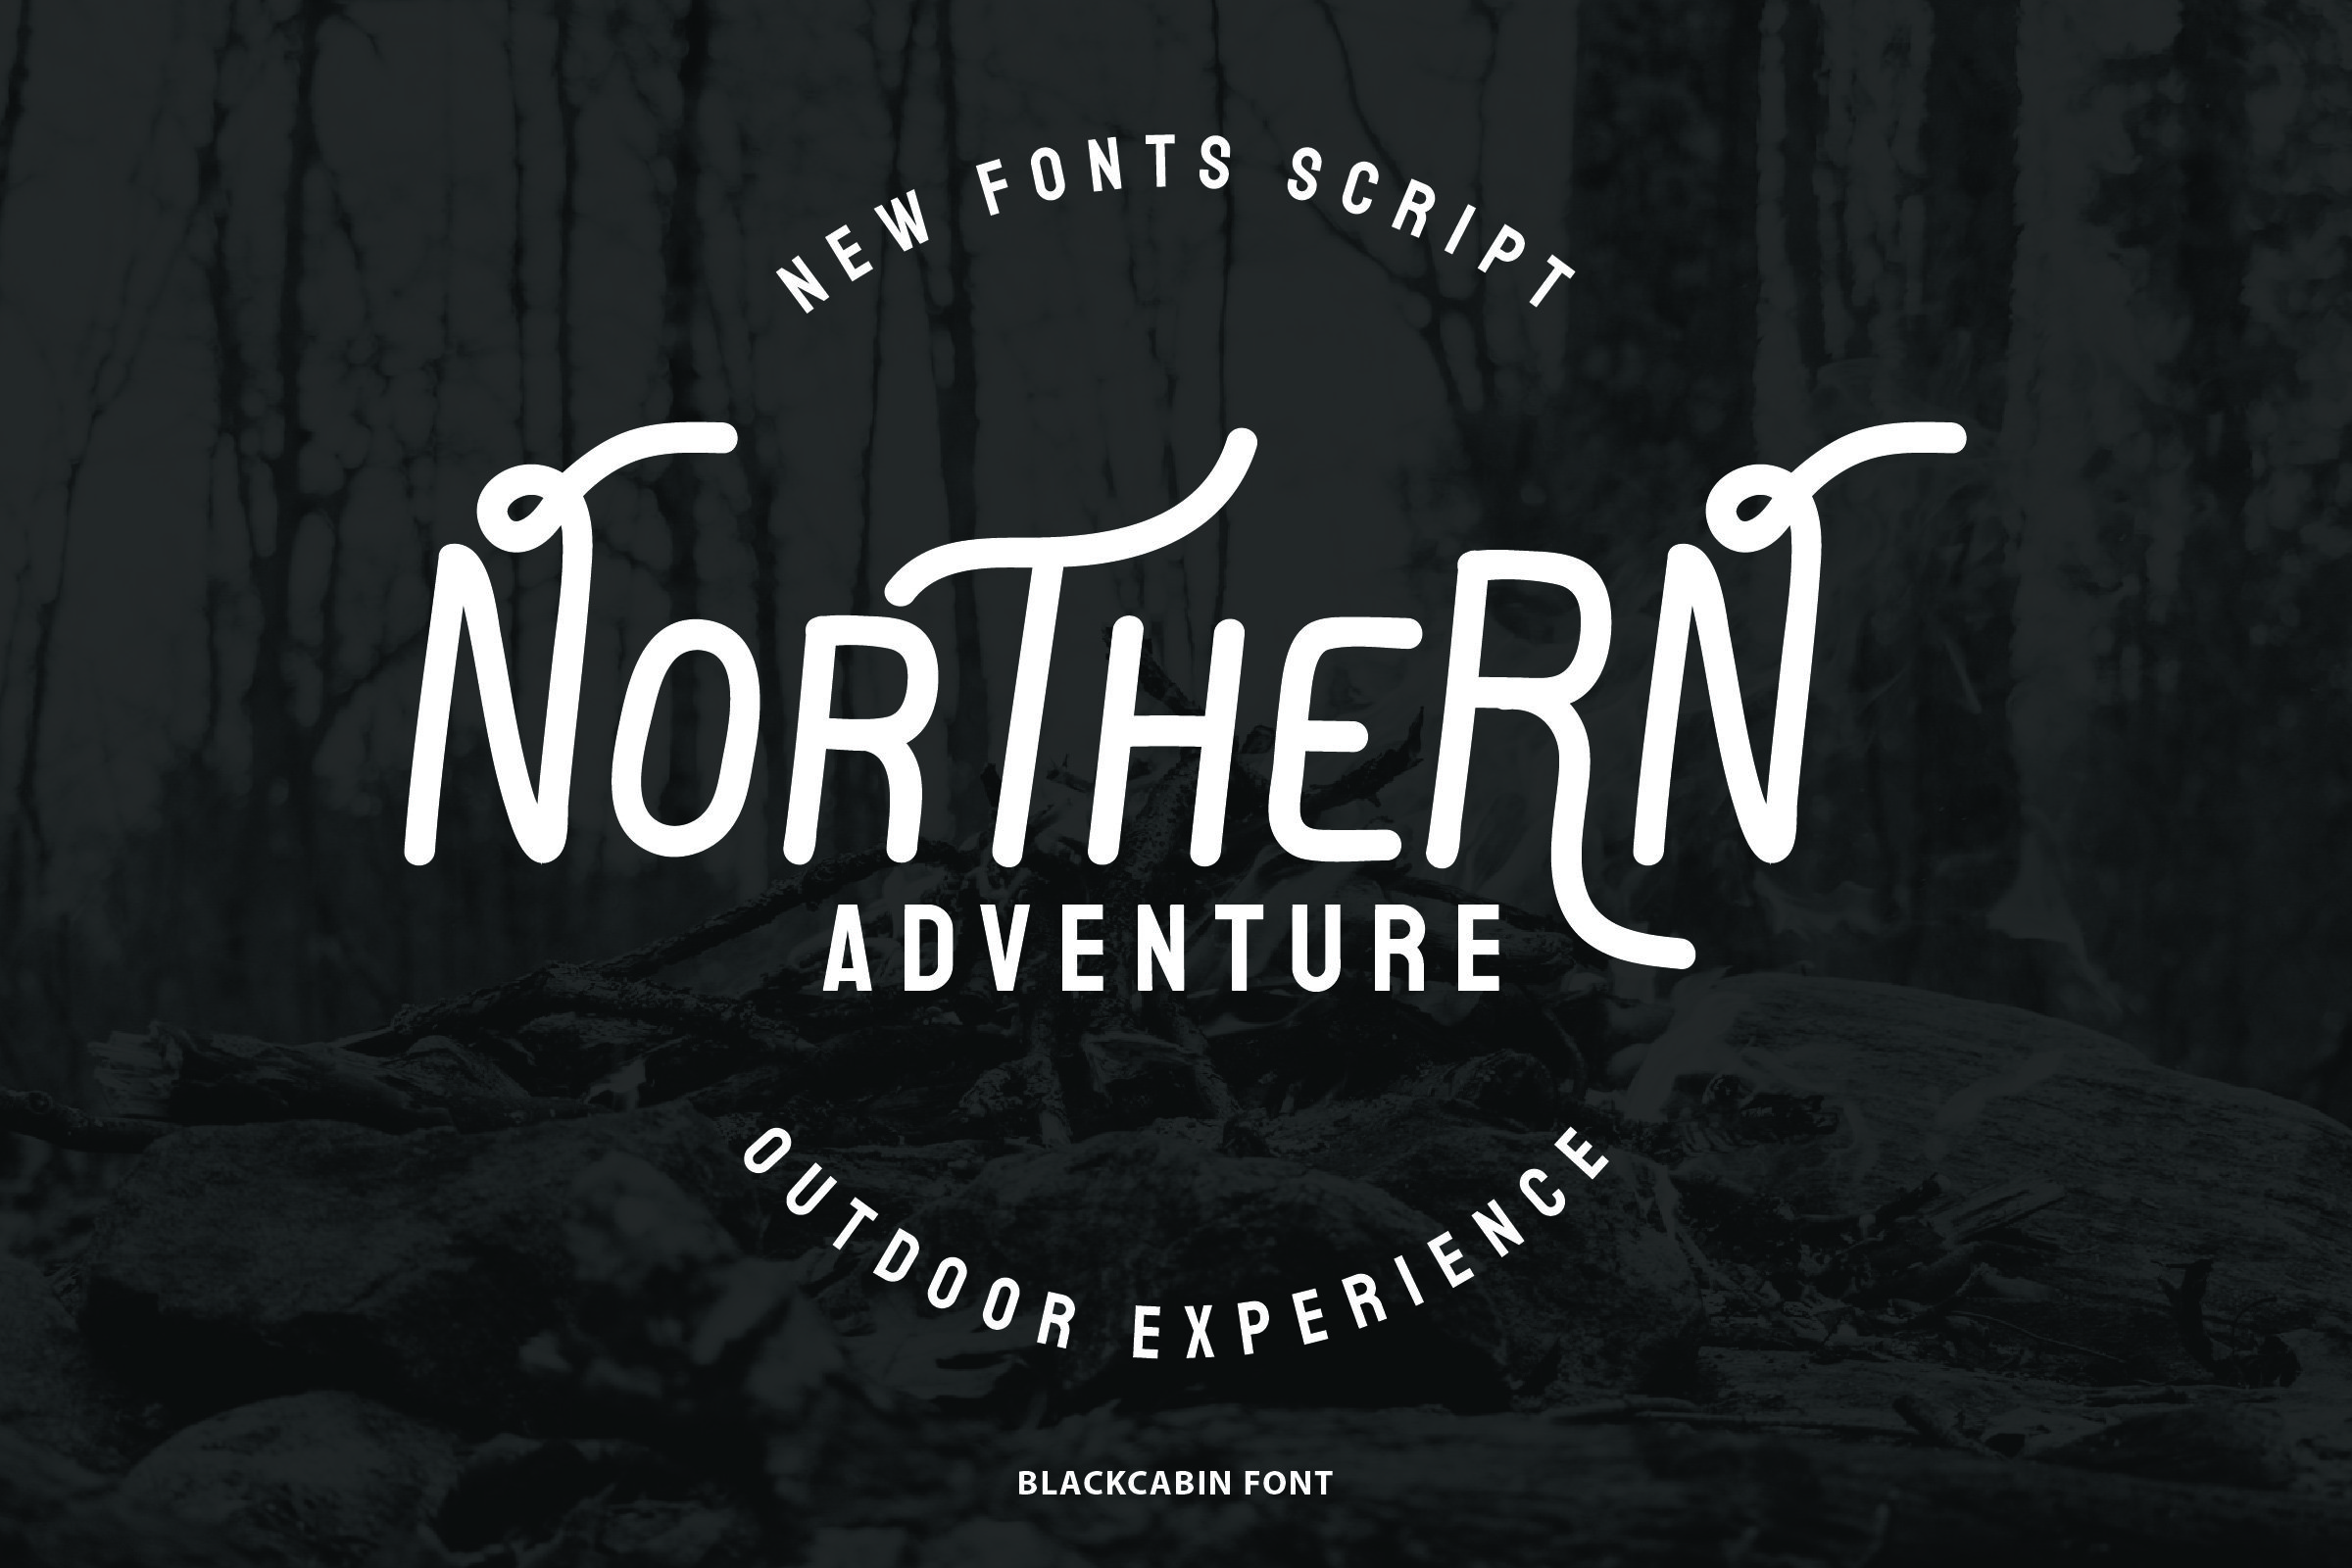 Smooth sans serif font on a forest background.